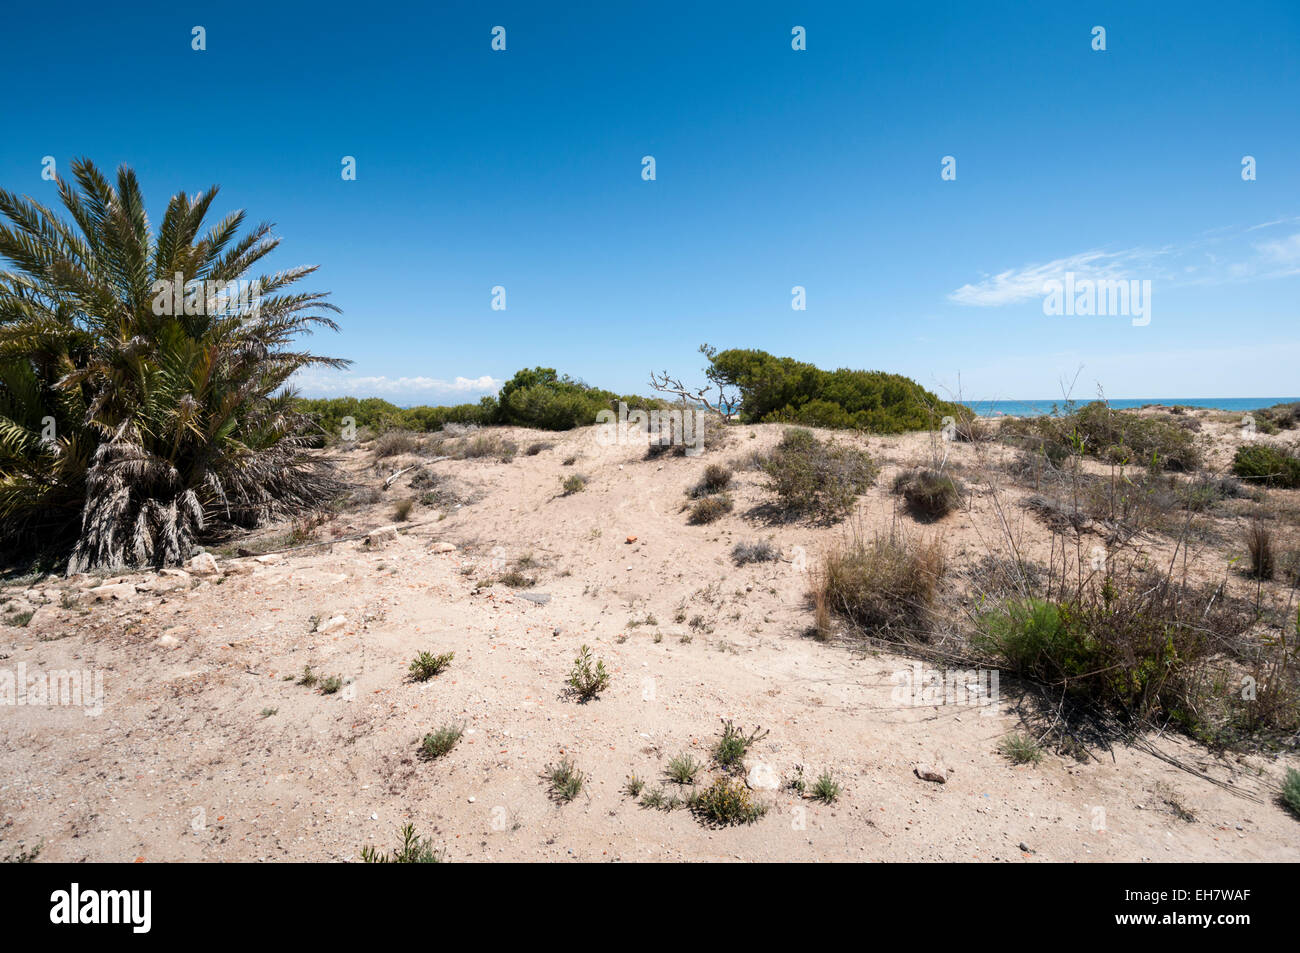 Aleppo Pine, Pinus halepensis, and palm trees growing in dunes in Carabassi beach - Stock Image